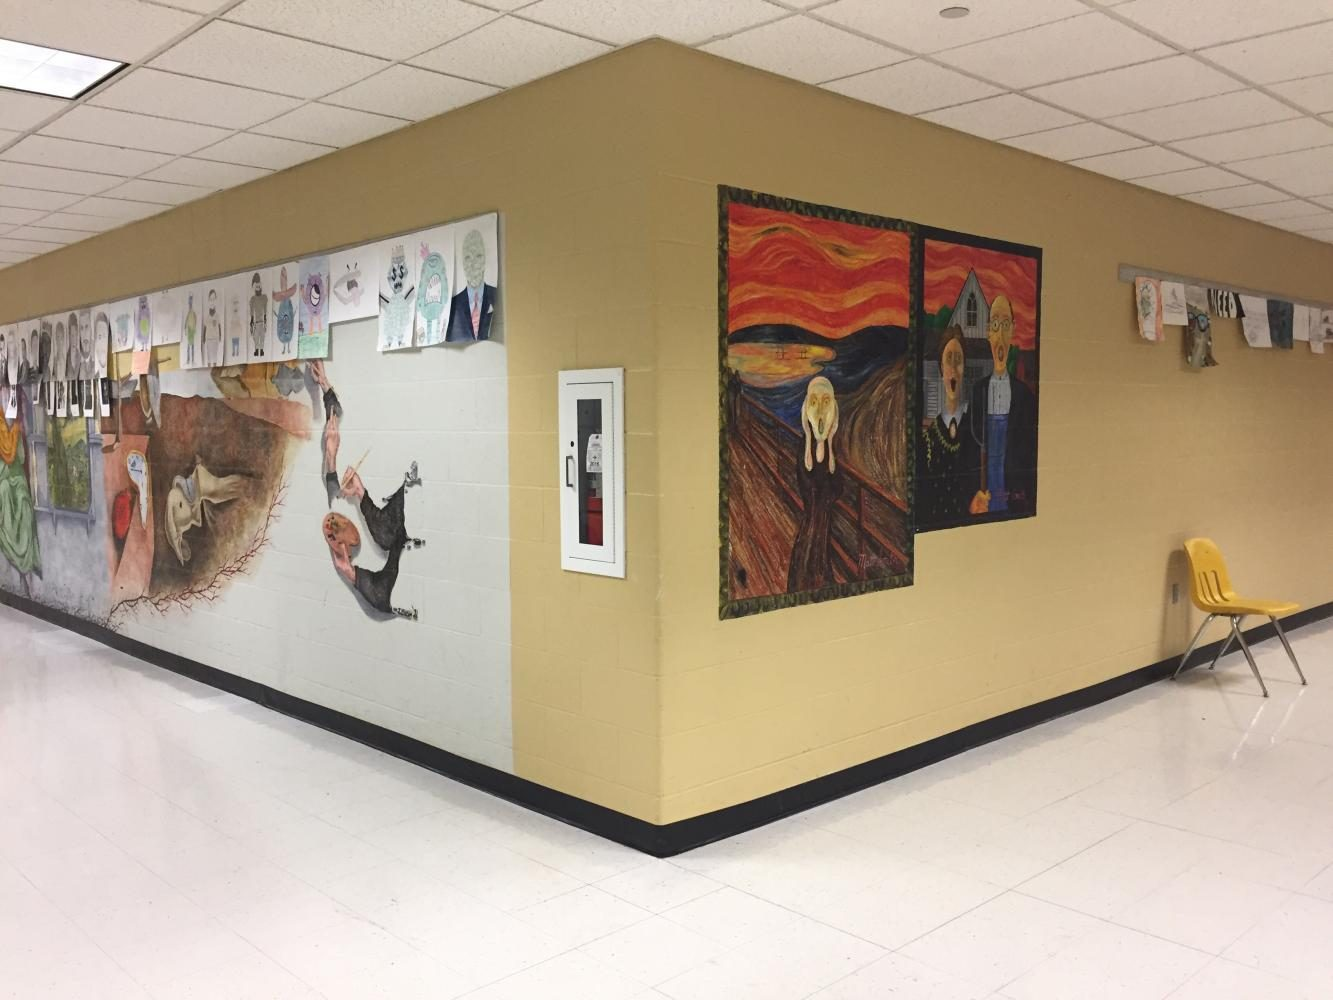 In+the+art+hallway%2C+murals+have+been+added+to+be+showcased+along+students+artwork.